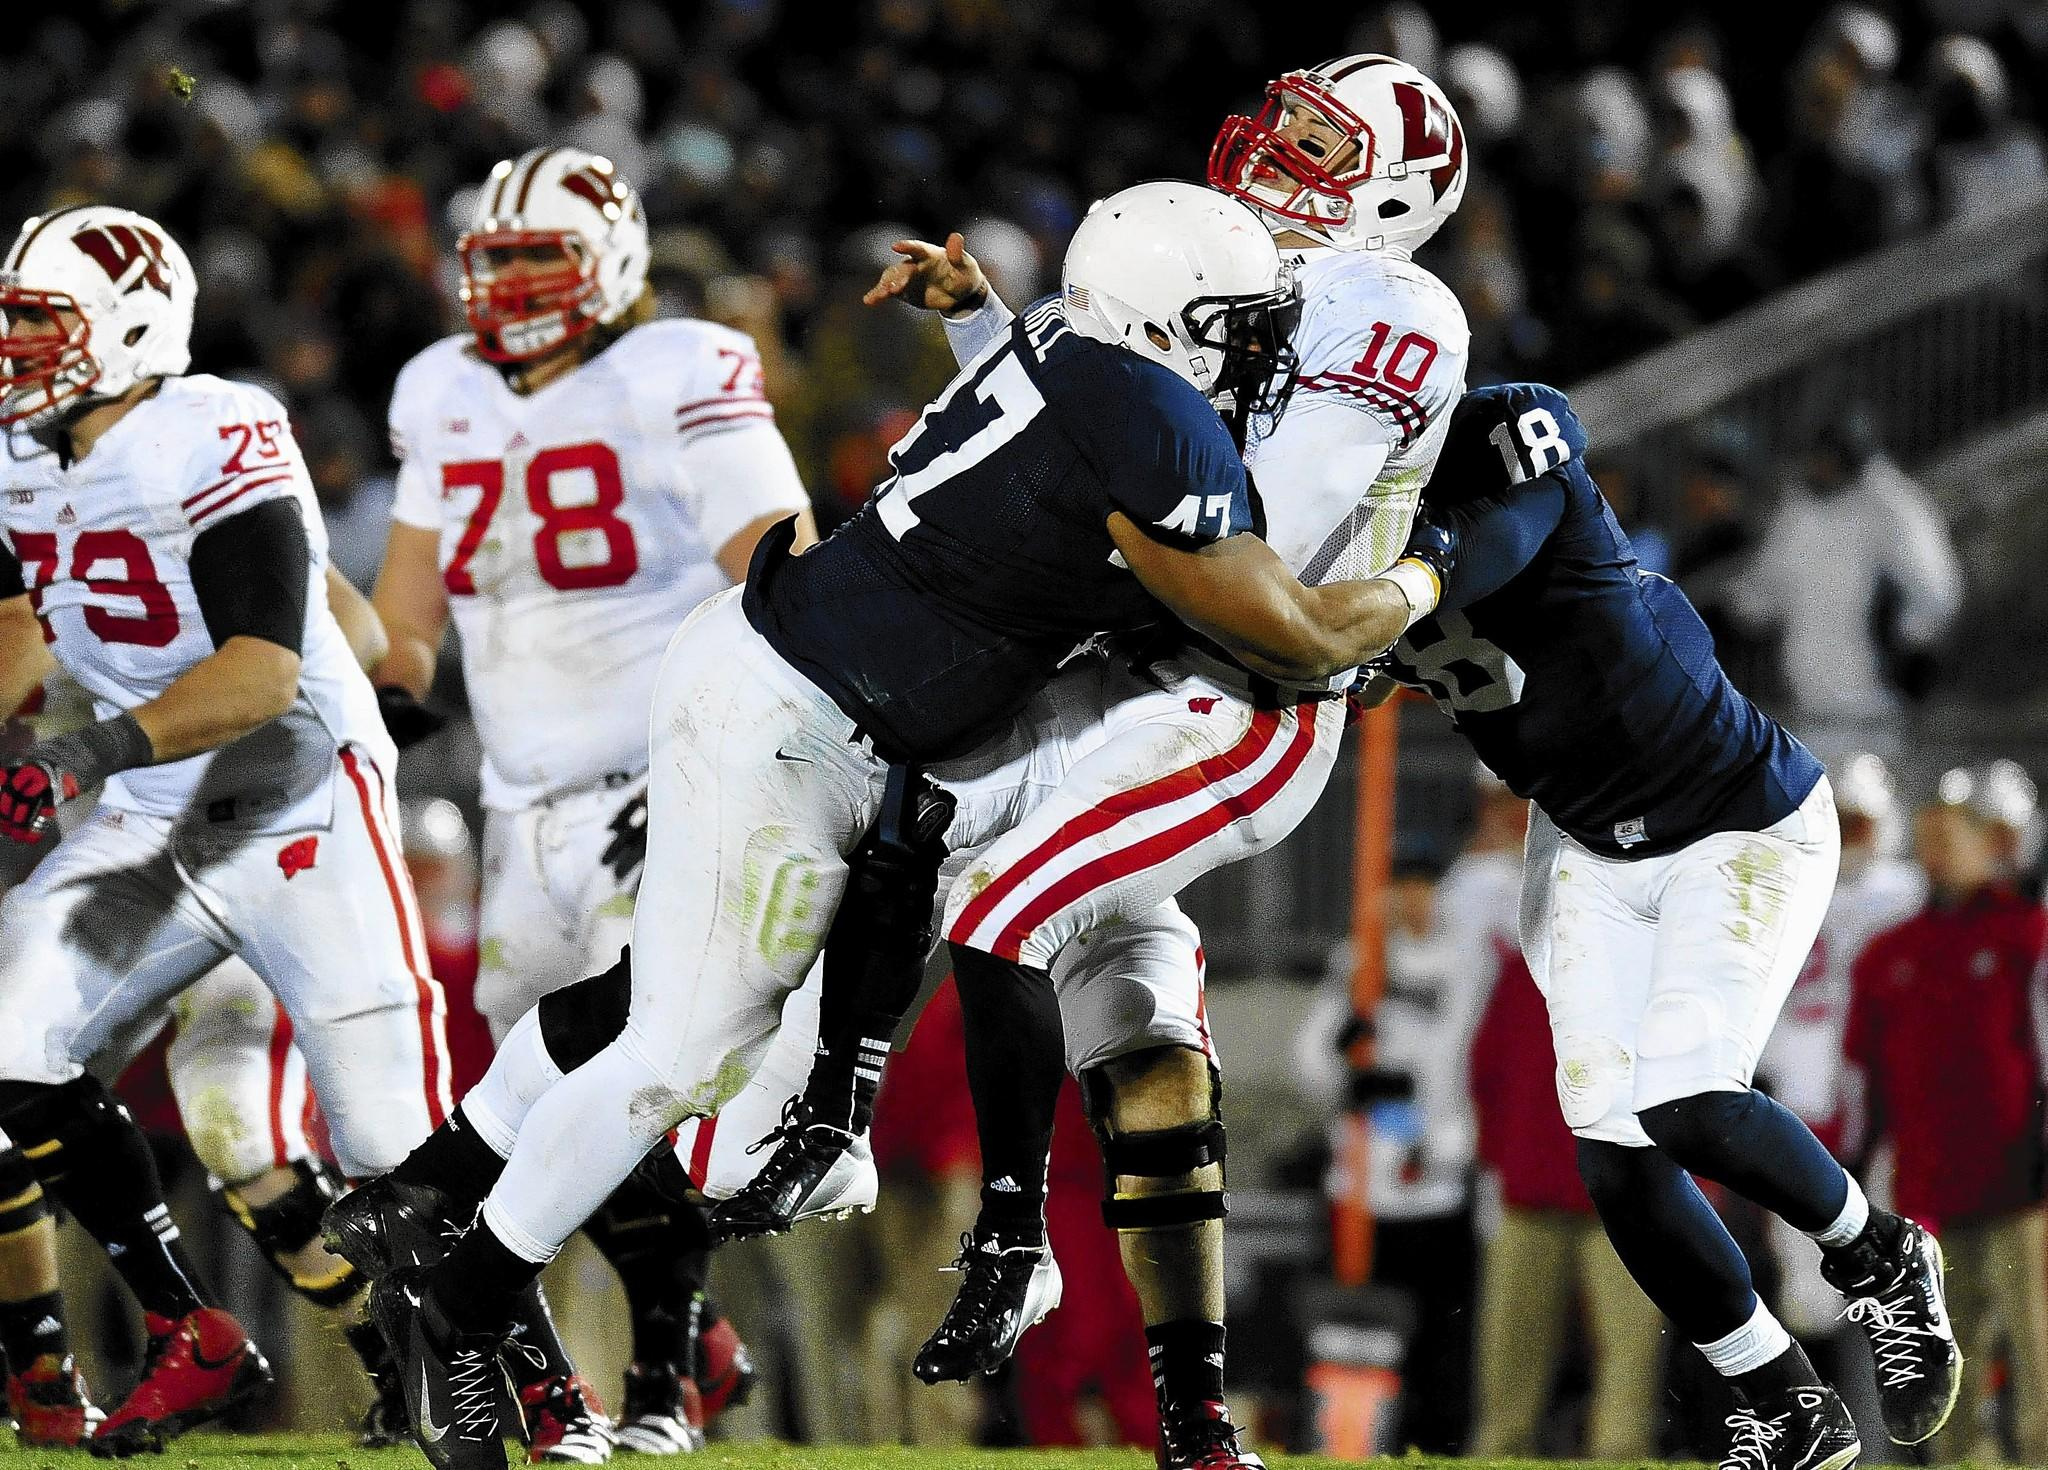 November 24, 2012; University Park, PA, USA; Wisconsin Badgers quarterback Curt Phillips (10) is hit by Penn State Nittany Lions defensive tackle Jordan Hill (47) at Beaver Stadium.